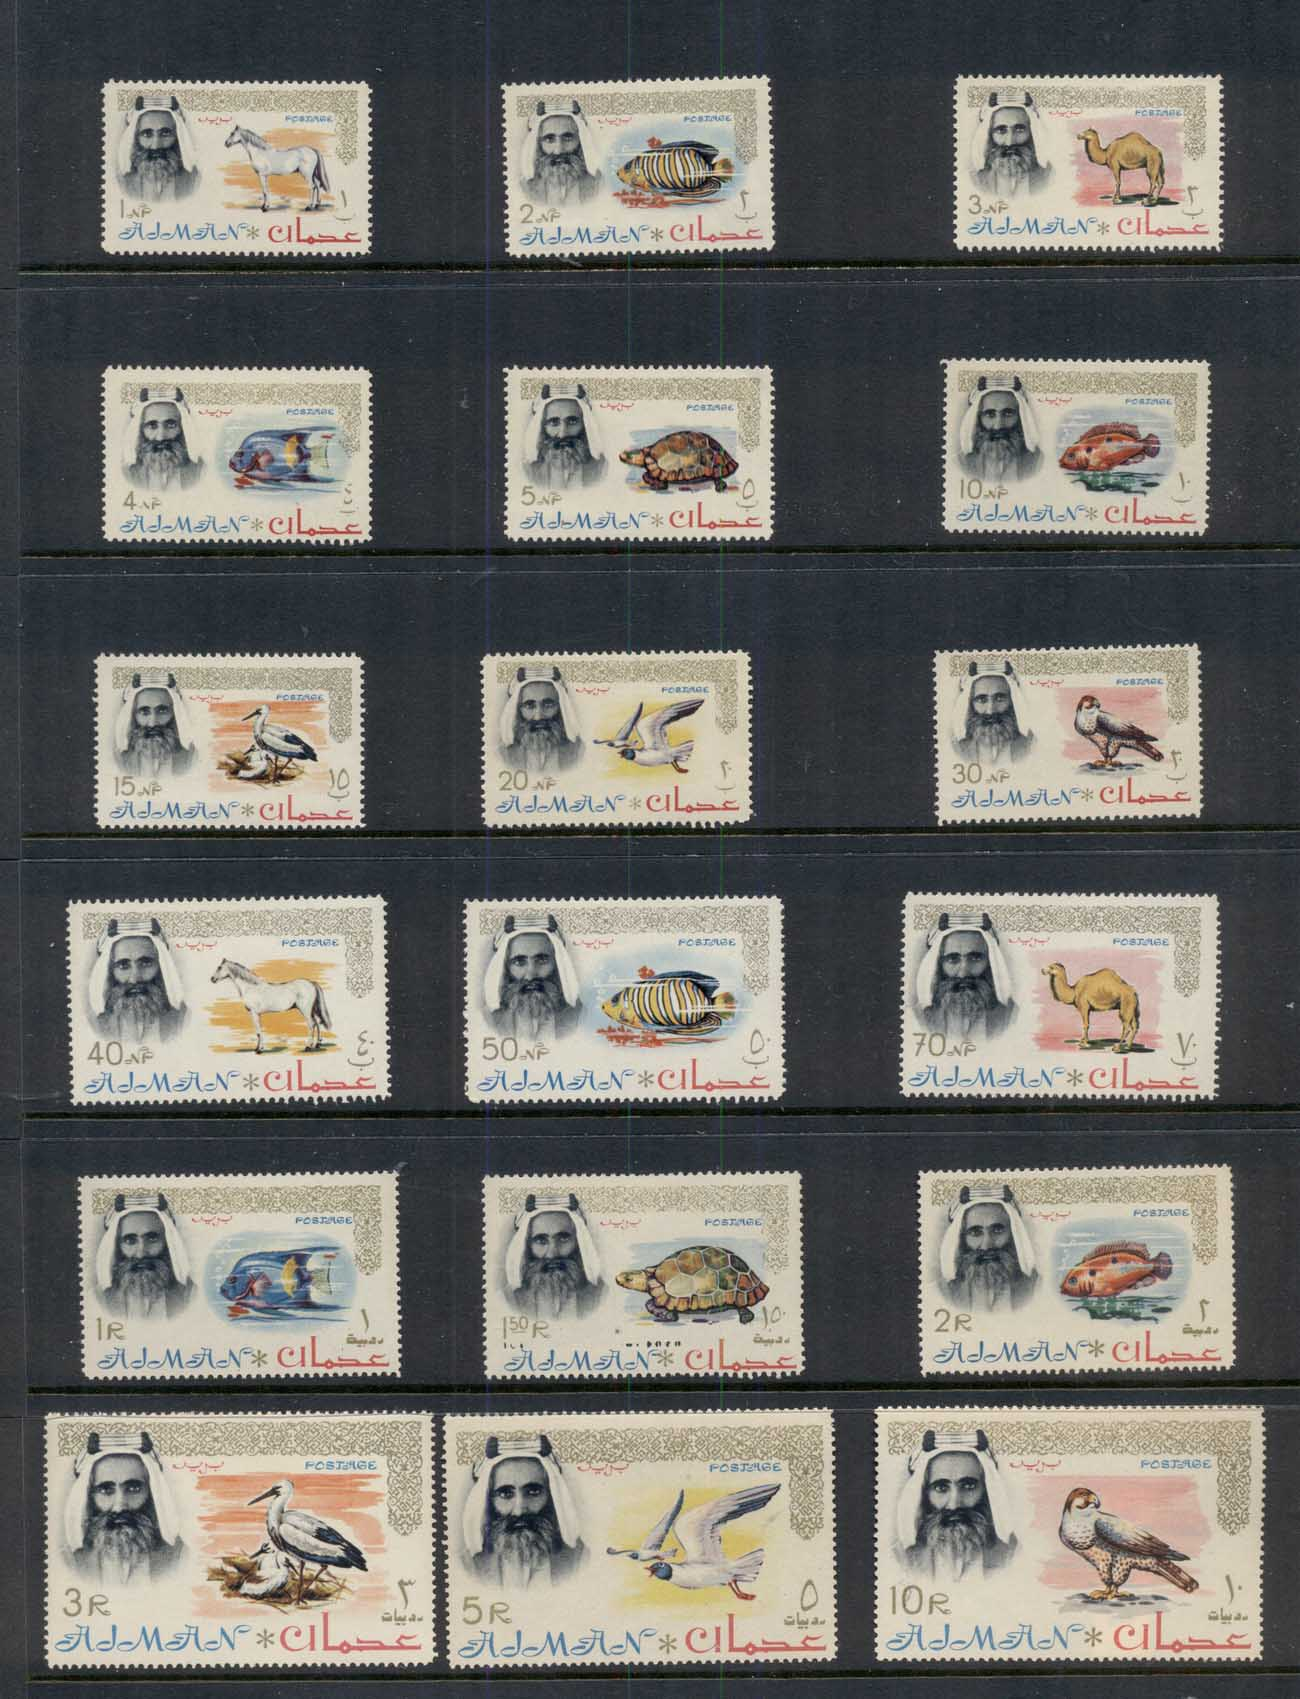 Ajman 1964 Mi#1-18 Definitives, Indigenous Fauna, Postage MUH